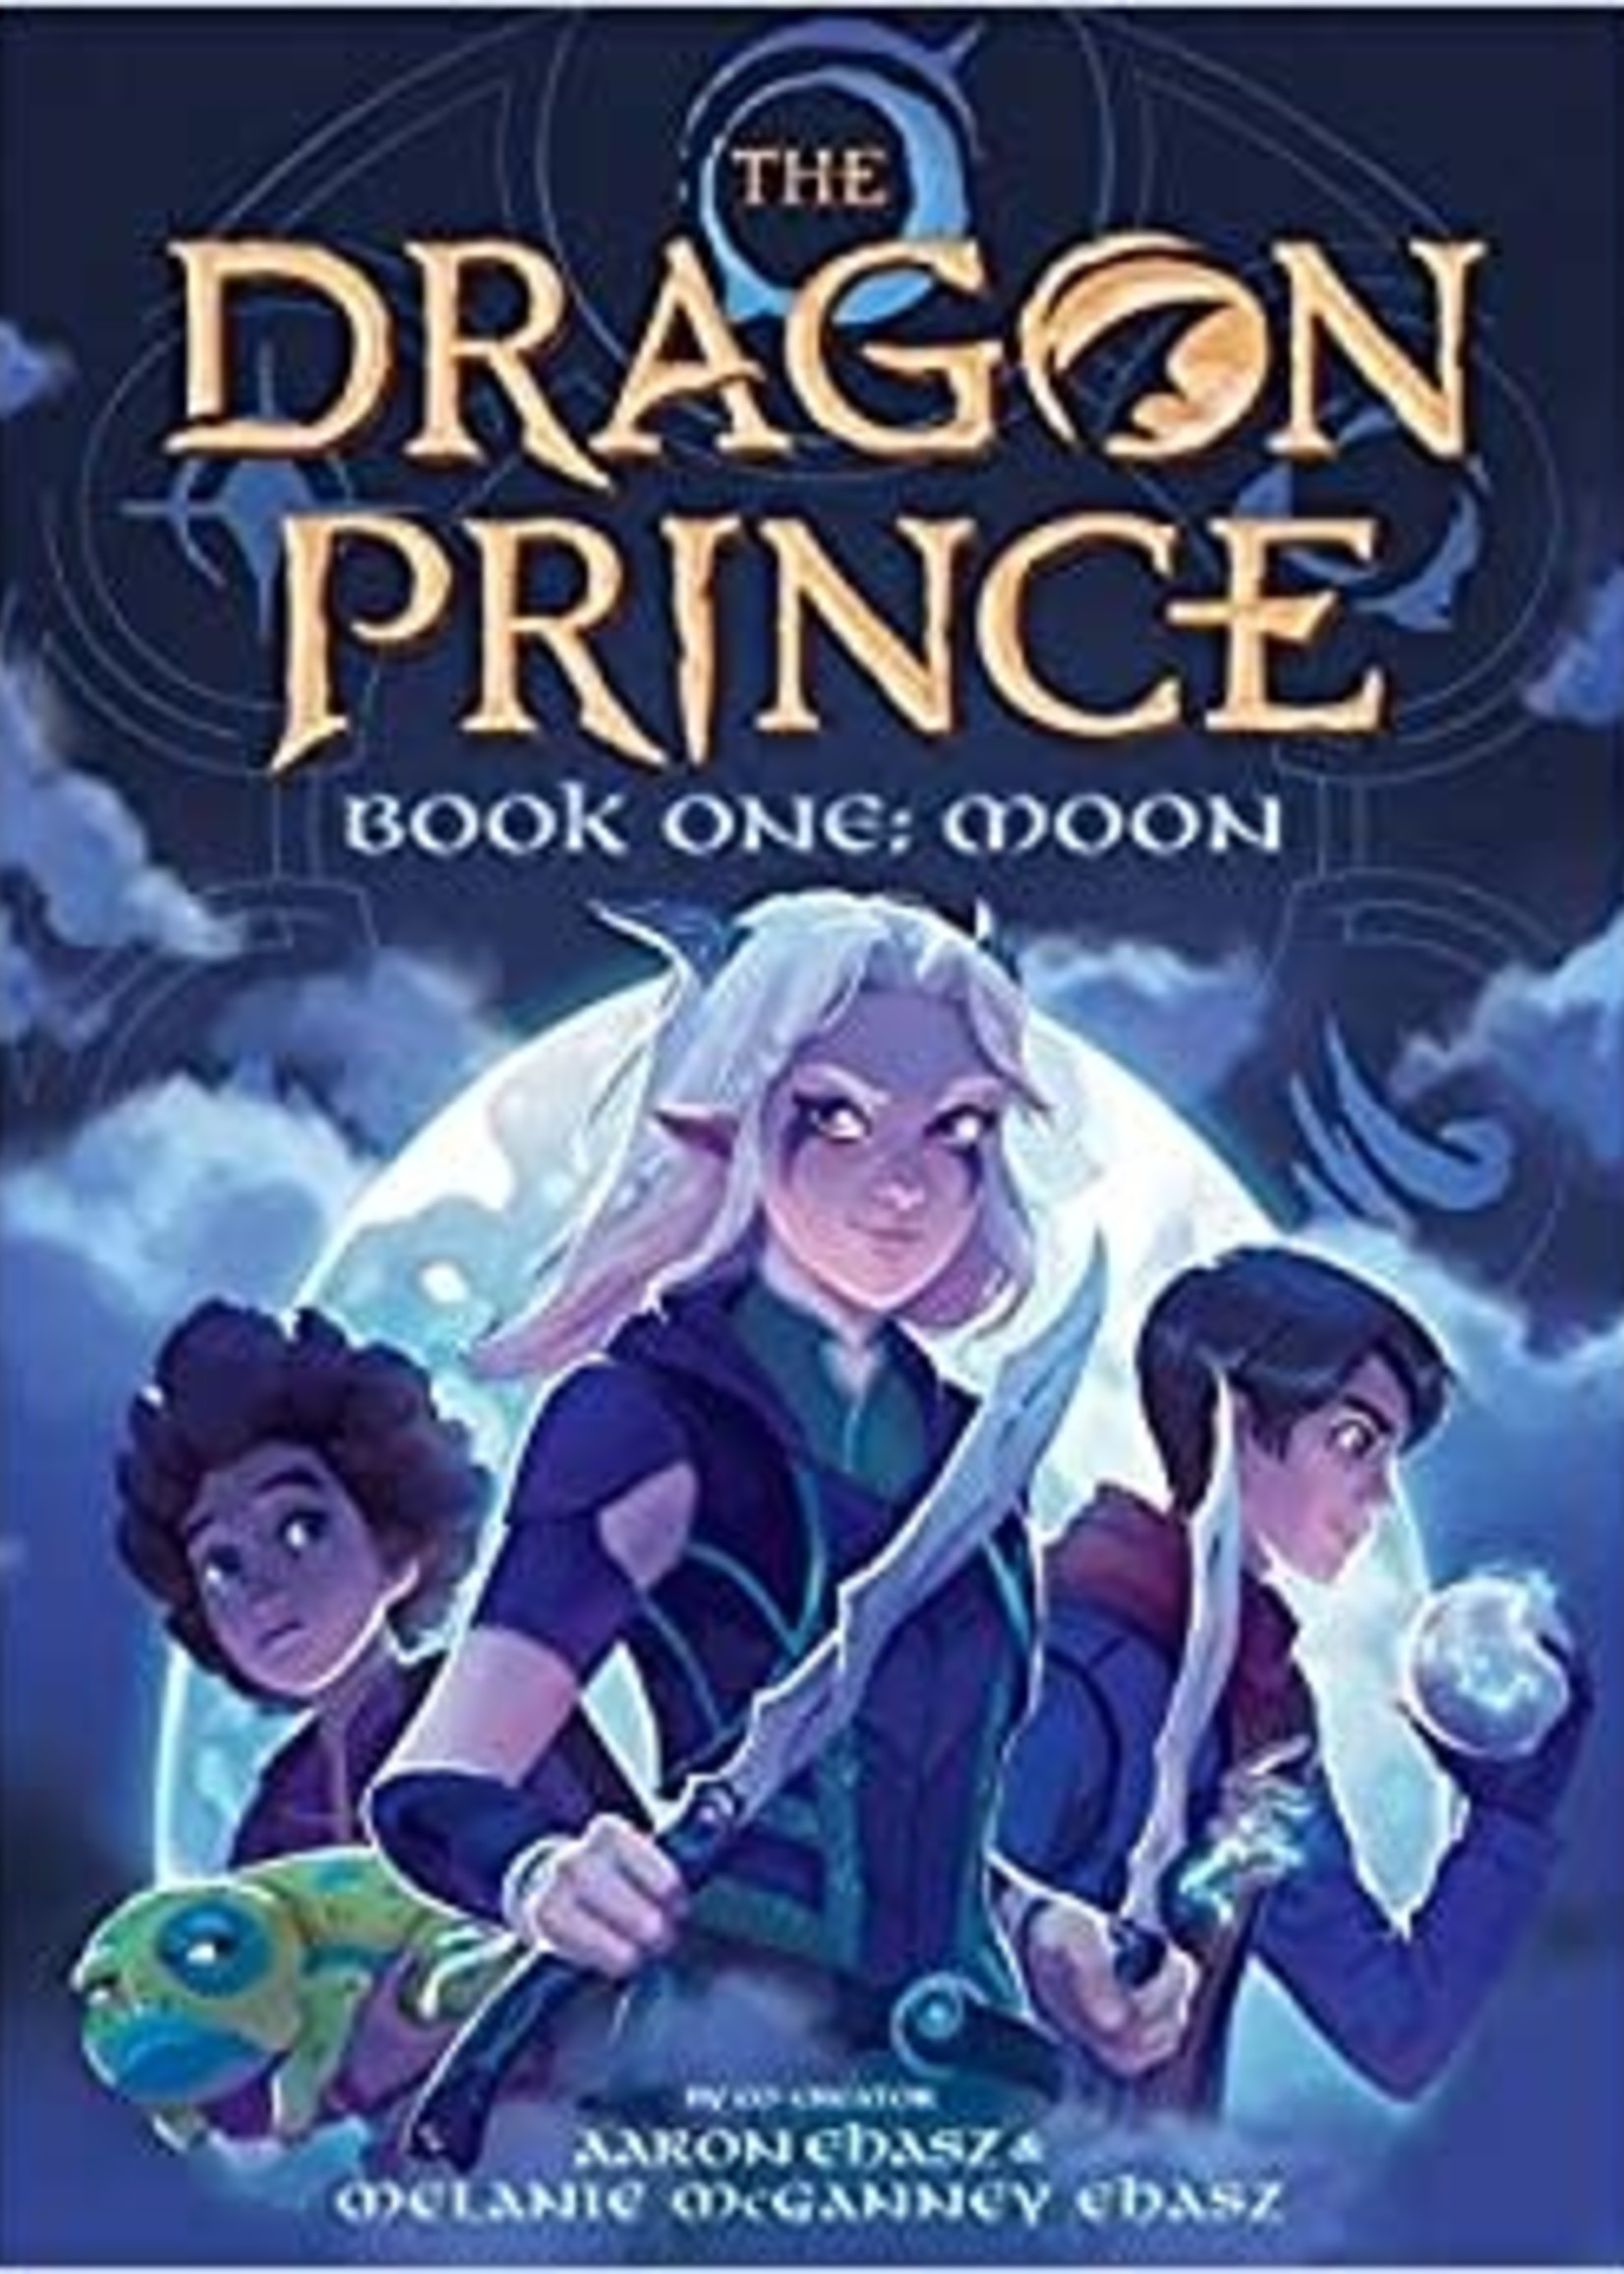 Book One: Moon (The Dragon Prince) by Aaron Ehasz